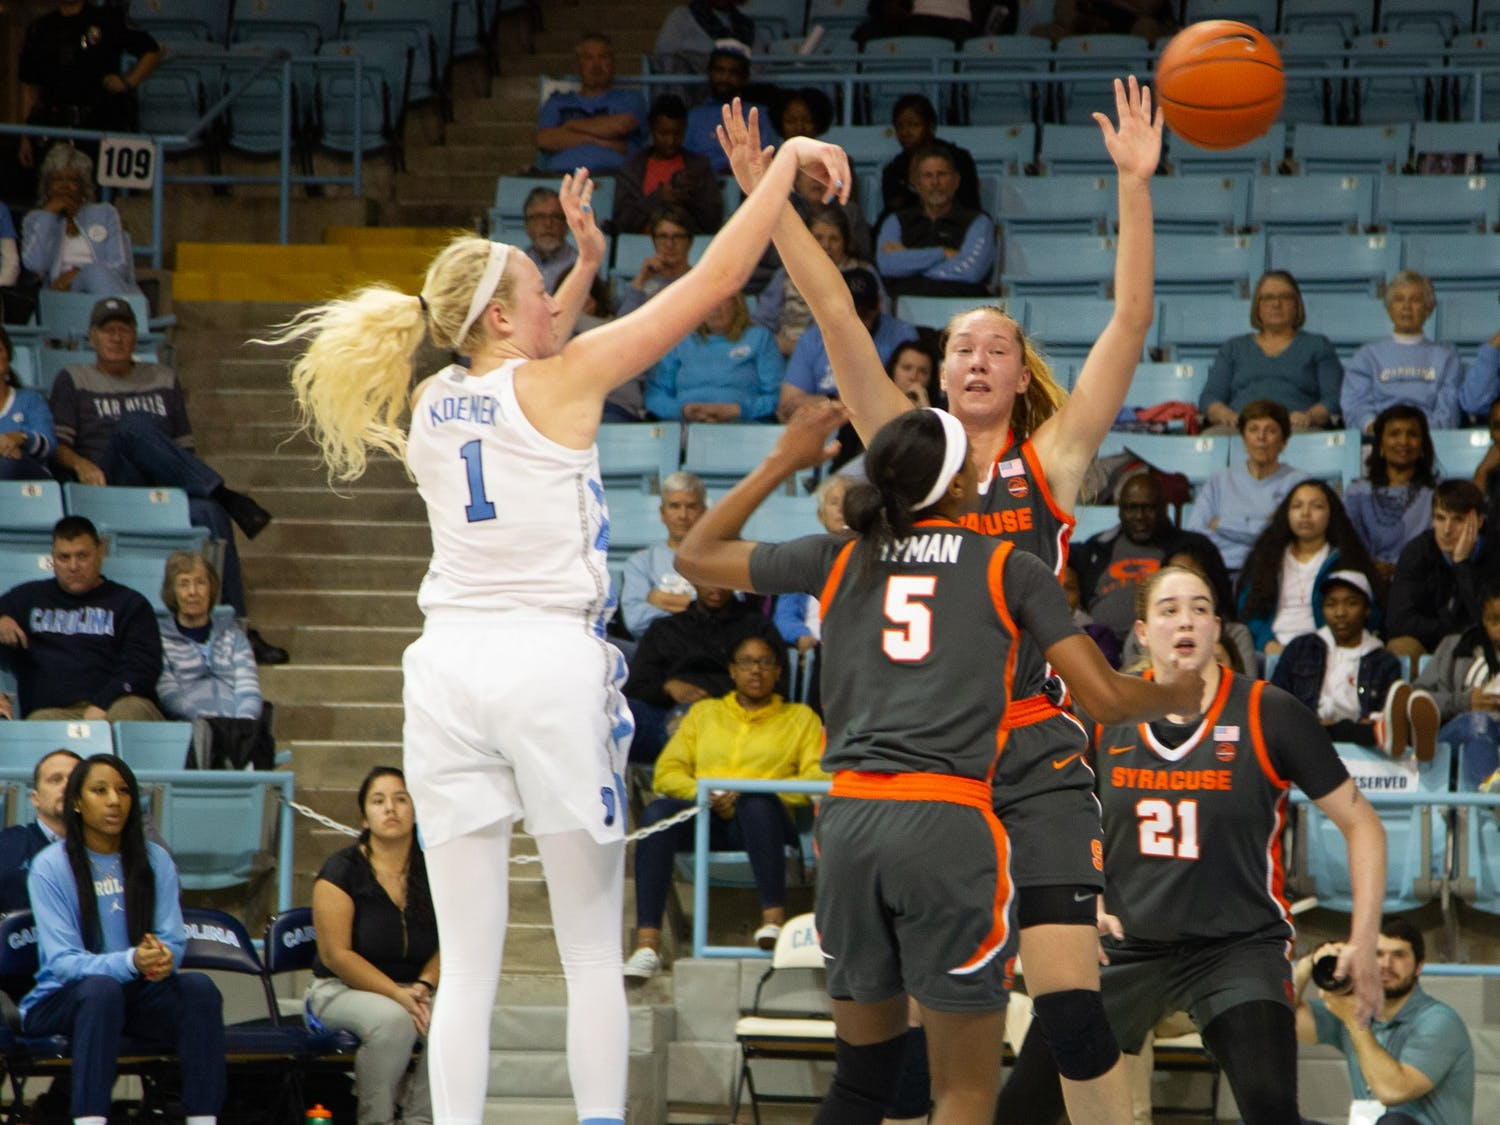 UNC senior guard Taylor Koenen (1) attempts a three-pointer while Syracuse players try to block during a game in Carmichael Arena on Thursday, Feb. 13, 2020. The Orange beat the Tar Heels 74-56.